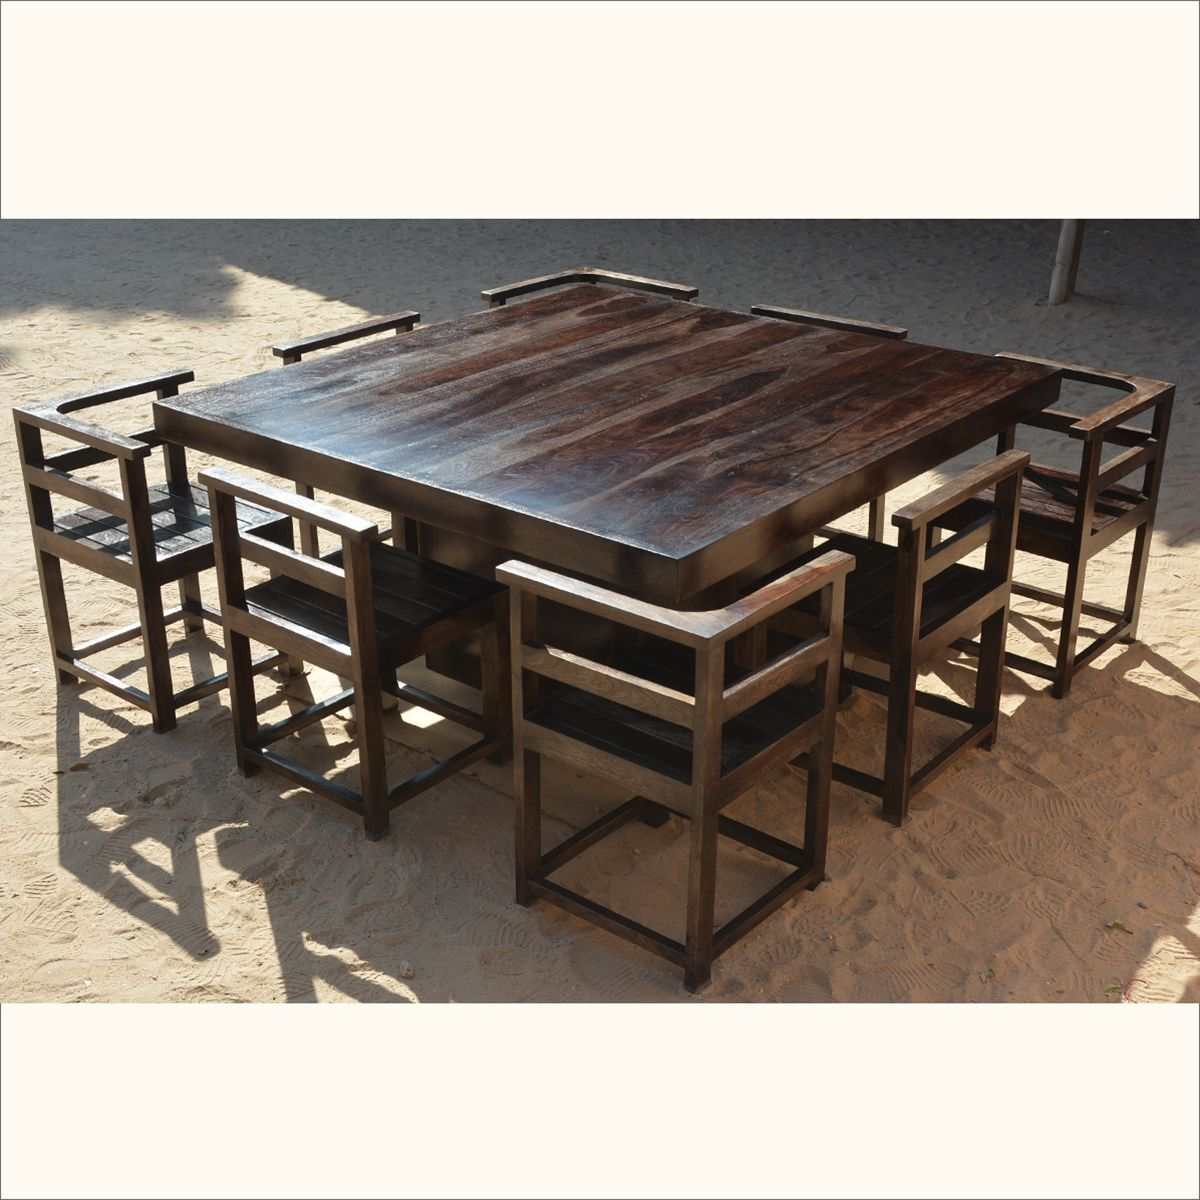 Square Dining Table With Bench: Square Kitchen Table With 8 Chairs